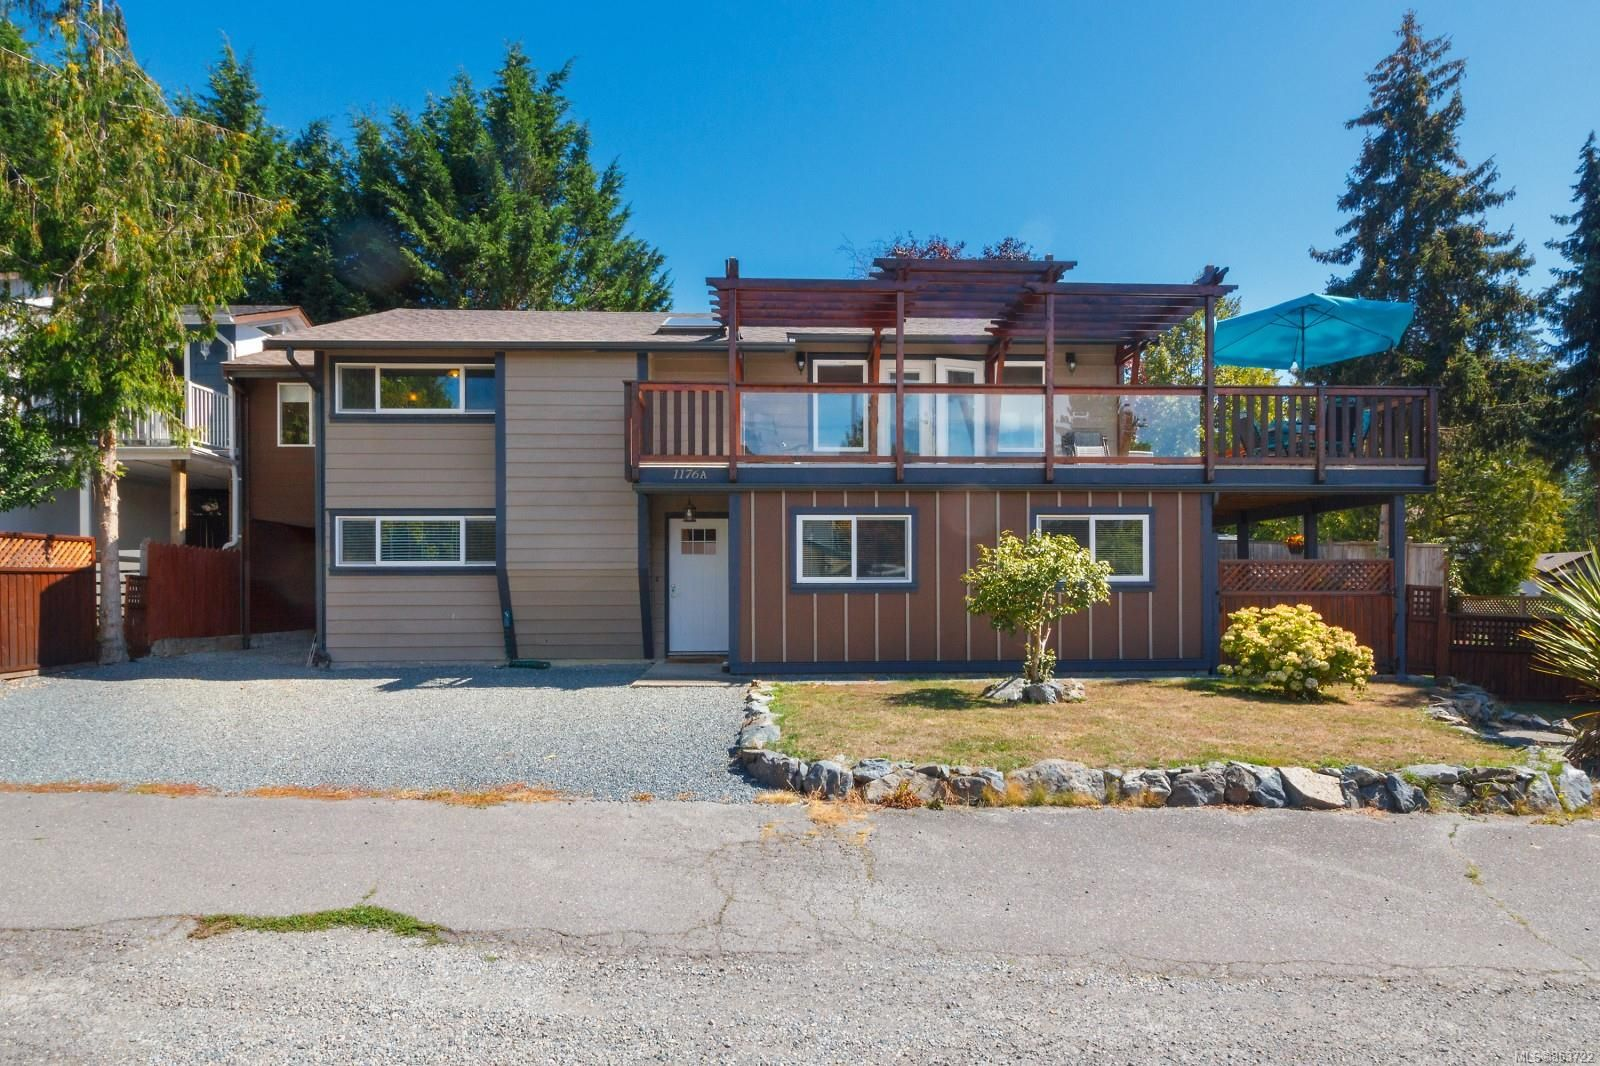 Main Photo: 1176A Damelart Way in : CS Brentwood Bay House for sale (Central Saanich)  : MLS®# 853722